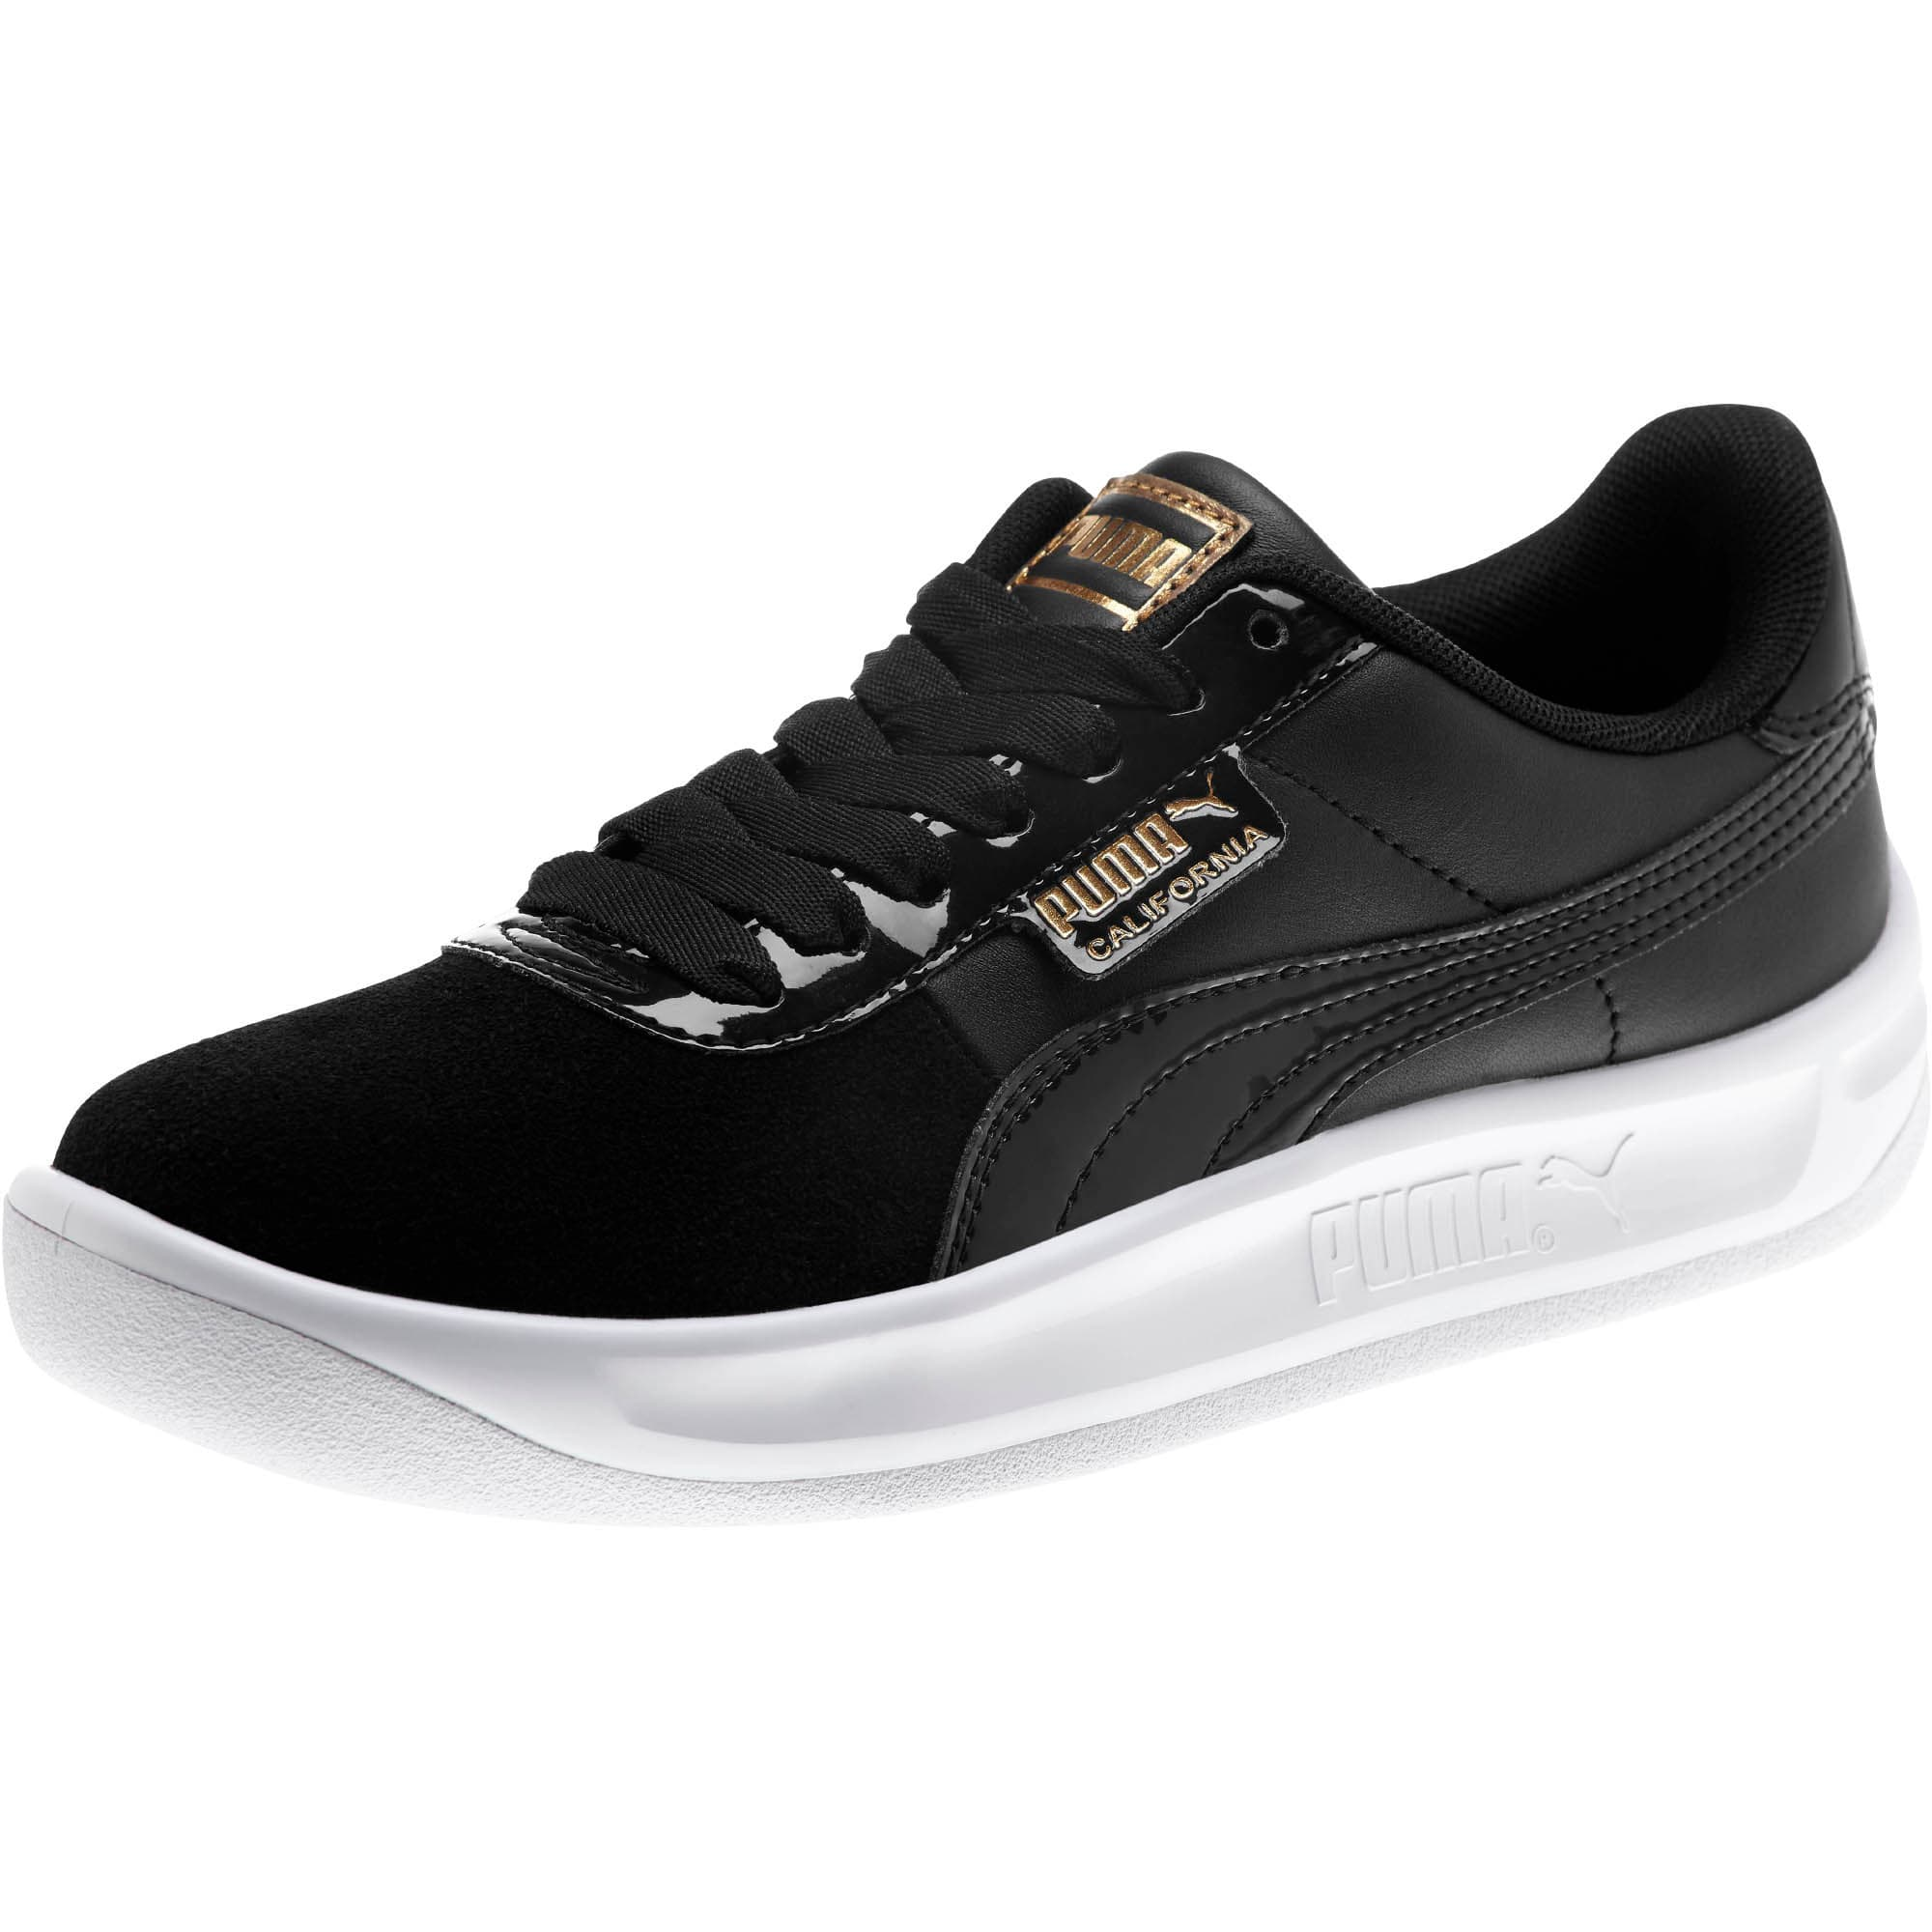 Thumbnail 1 of California Monochrome Women's Sneakers, Puma Black-Puma Team Gold, medium